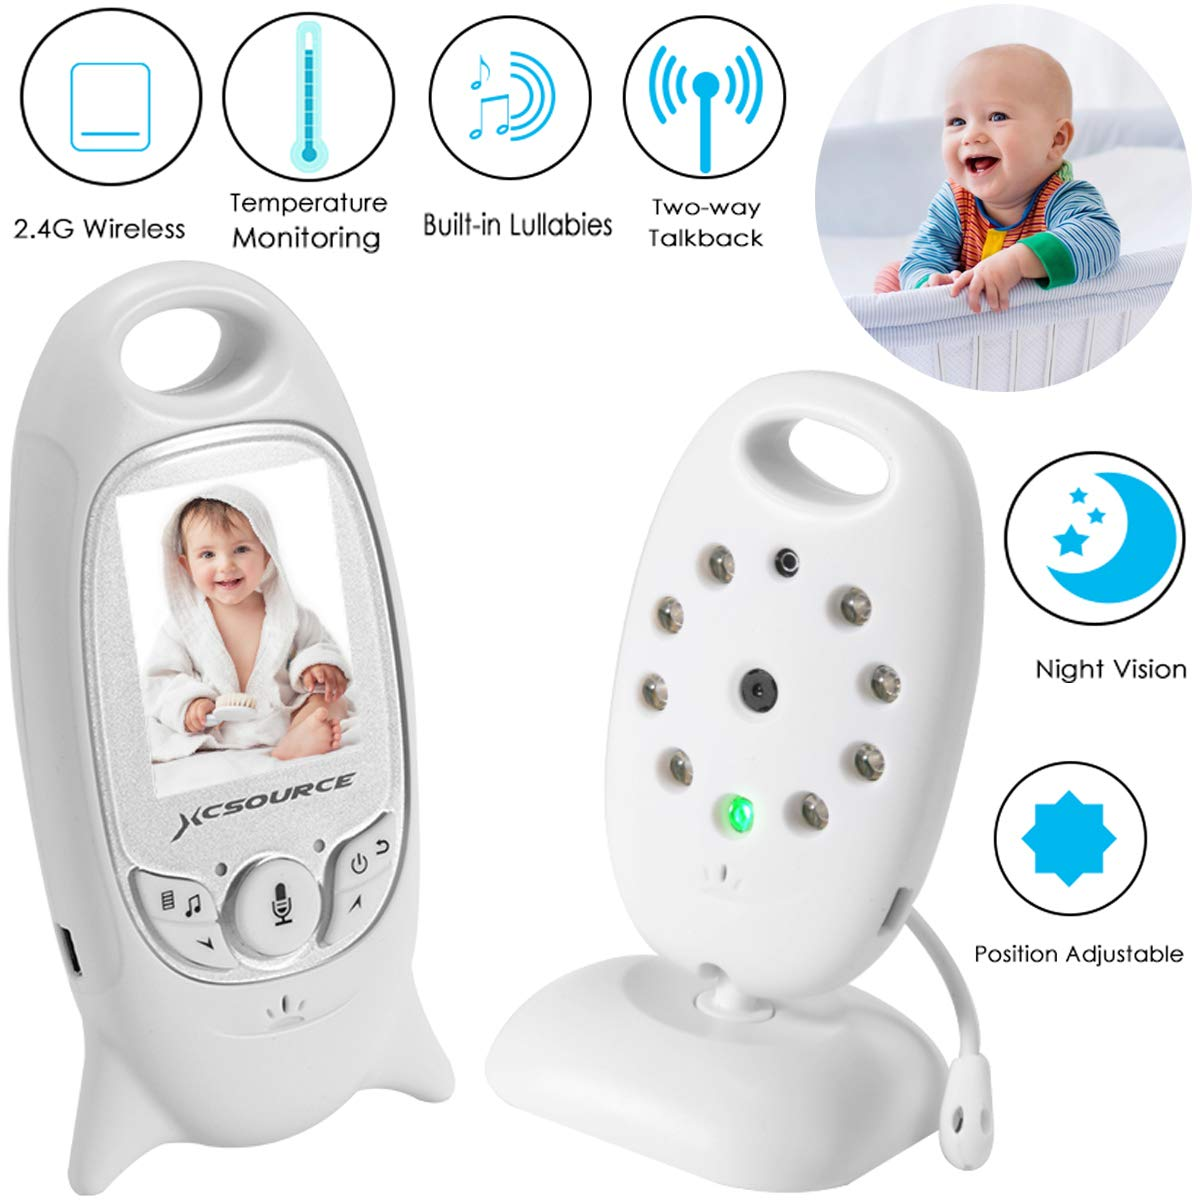 XCSOURCE Baby Monitor 2.4 GHz Wireless Digital Video Baby Monitor with Camera, 2 Way Talk Back Audio, Night Vision, Temperature Sensor, Built-in Lullabies, Large LCD Screen